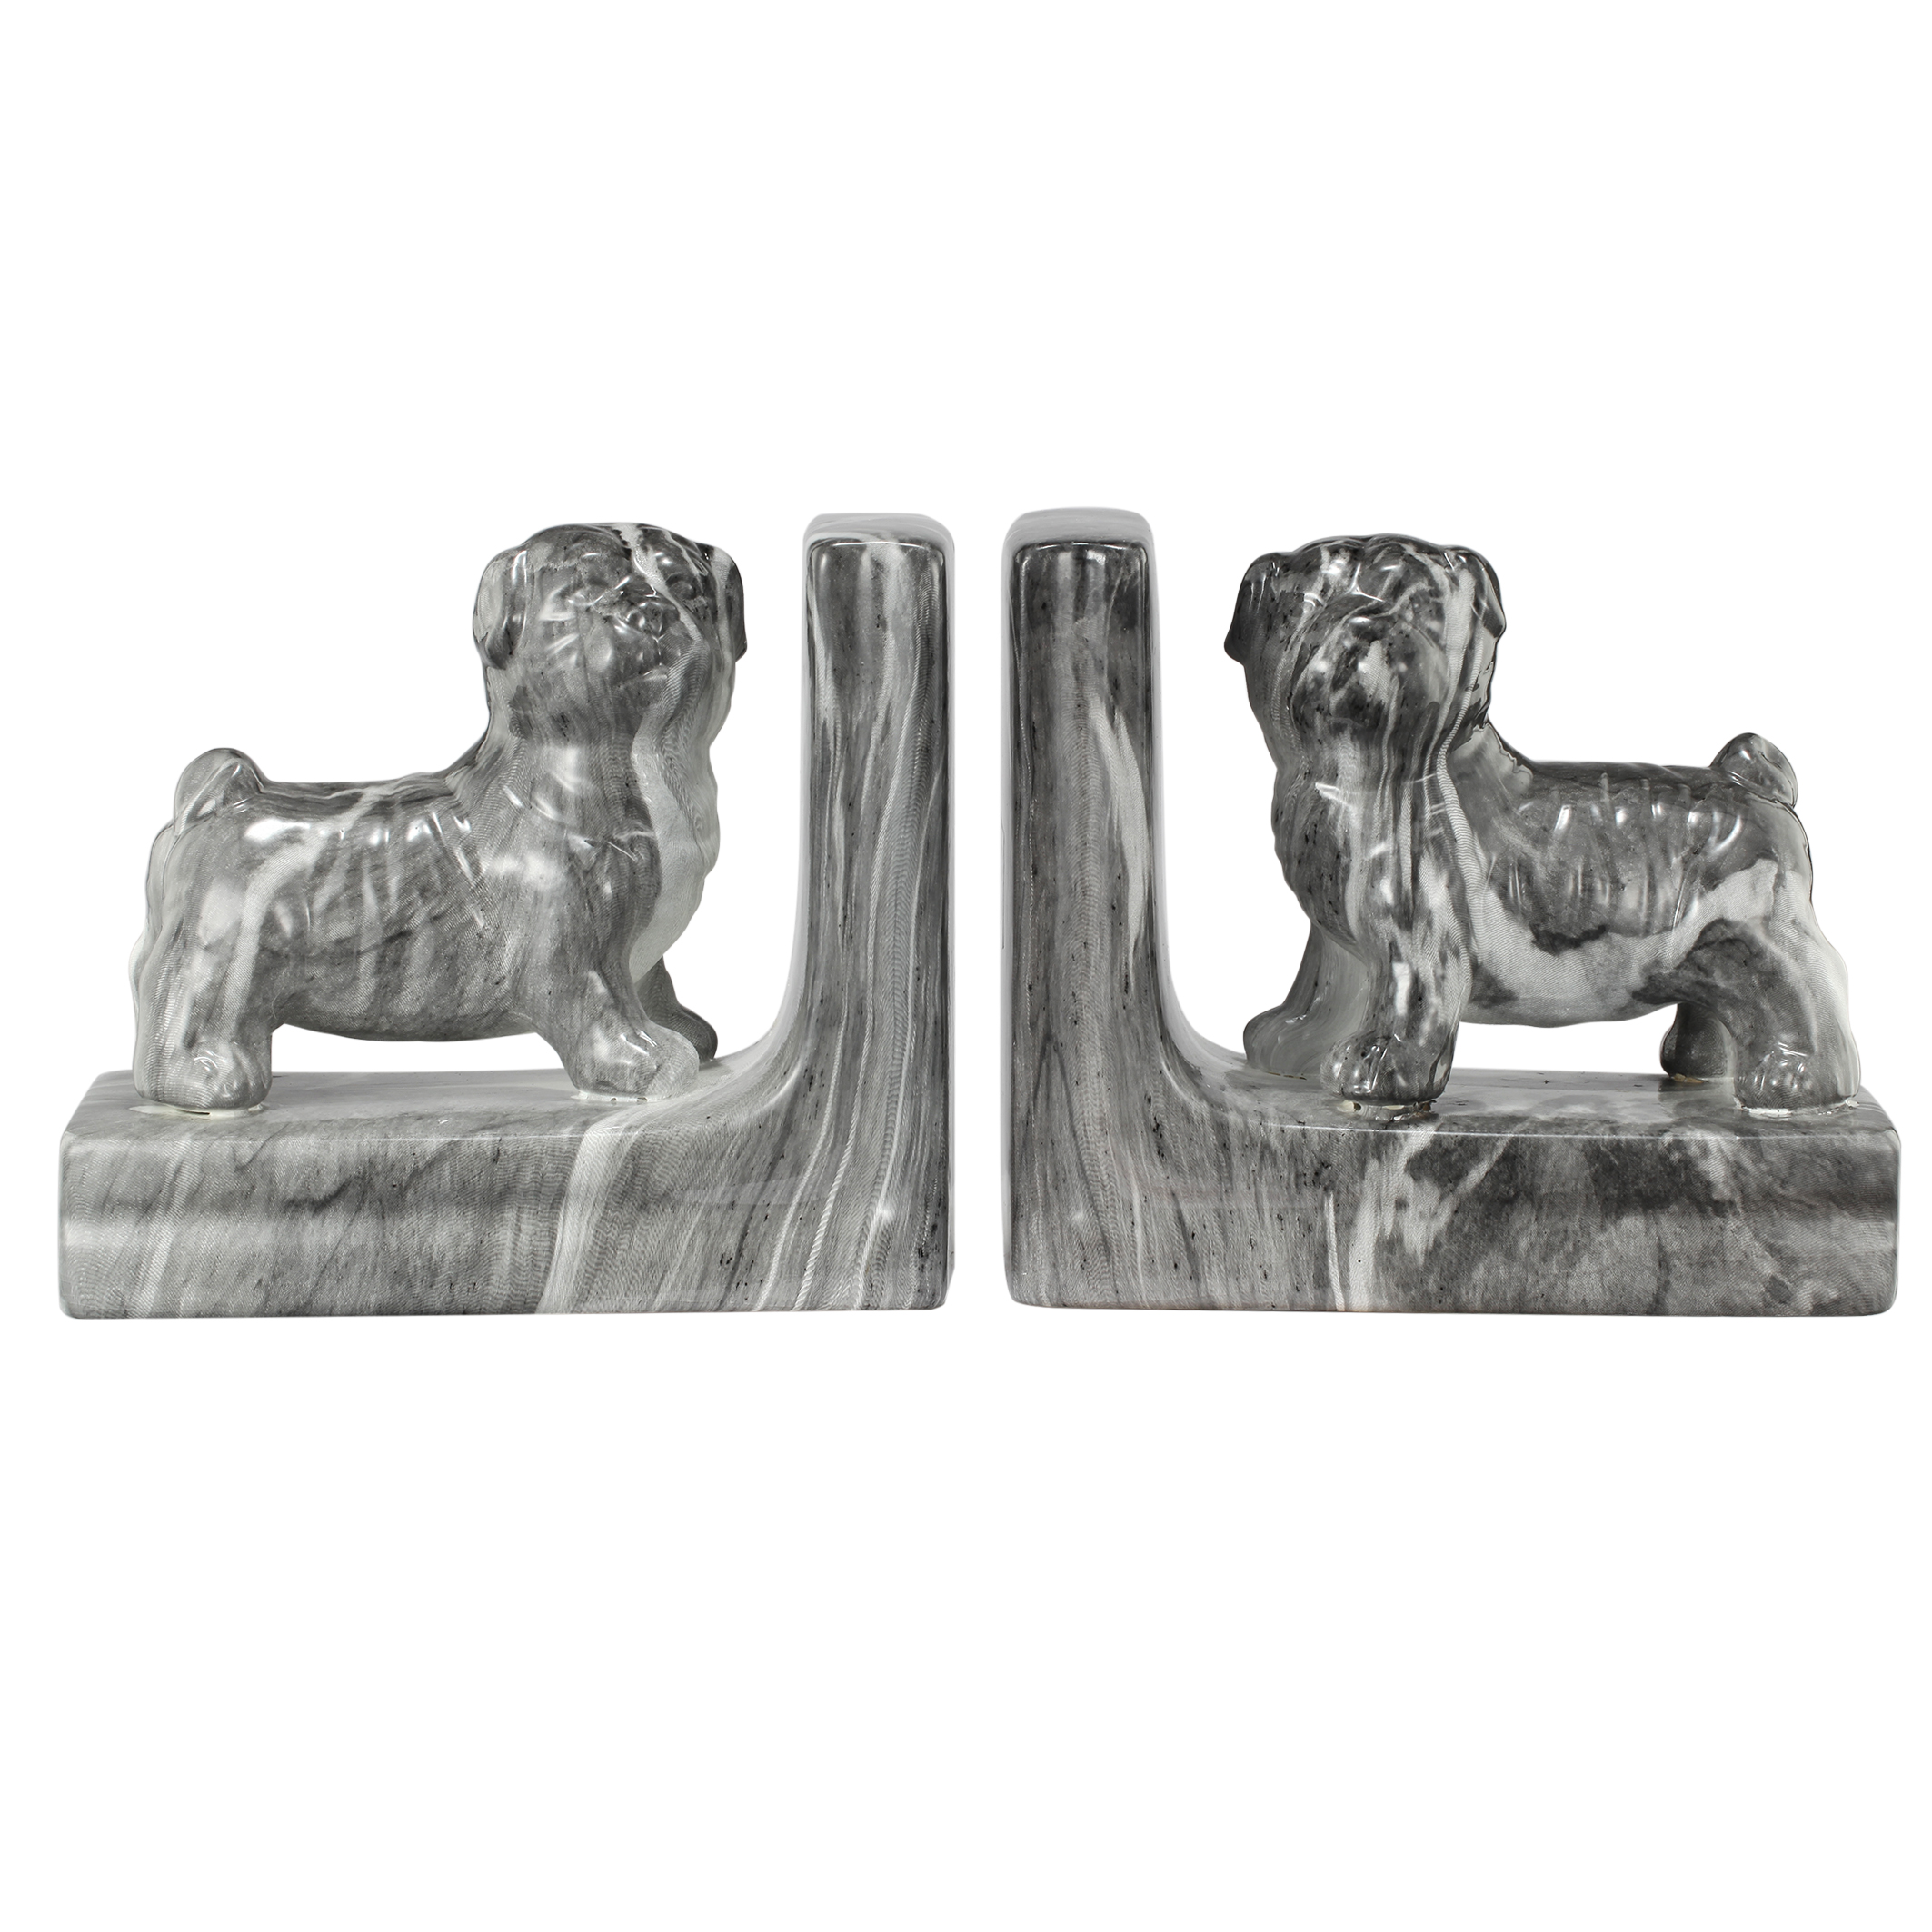 A&B Home Bull Dog Ceramic Bookends, Set of 2 by A&B Home